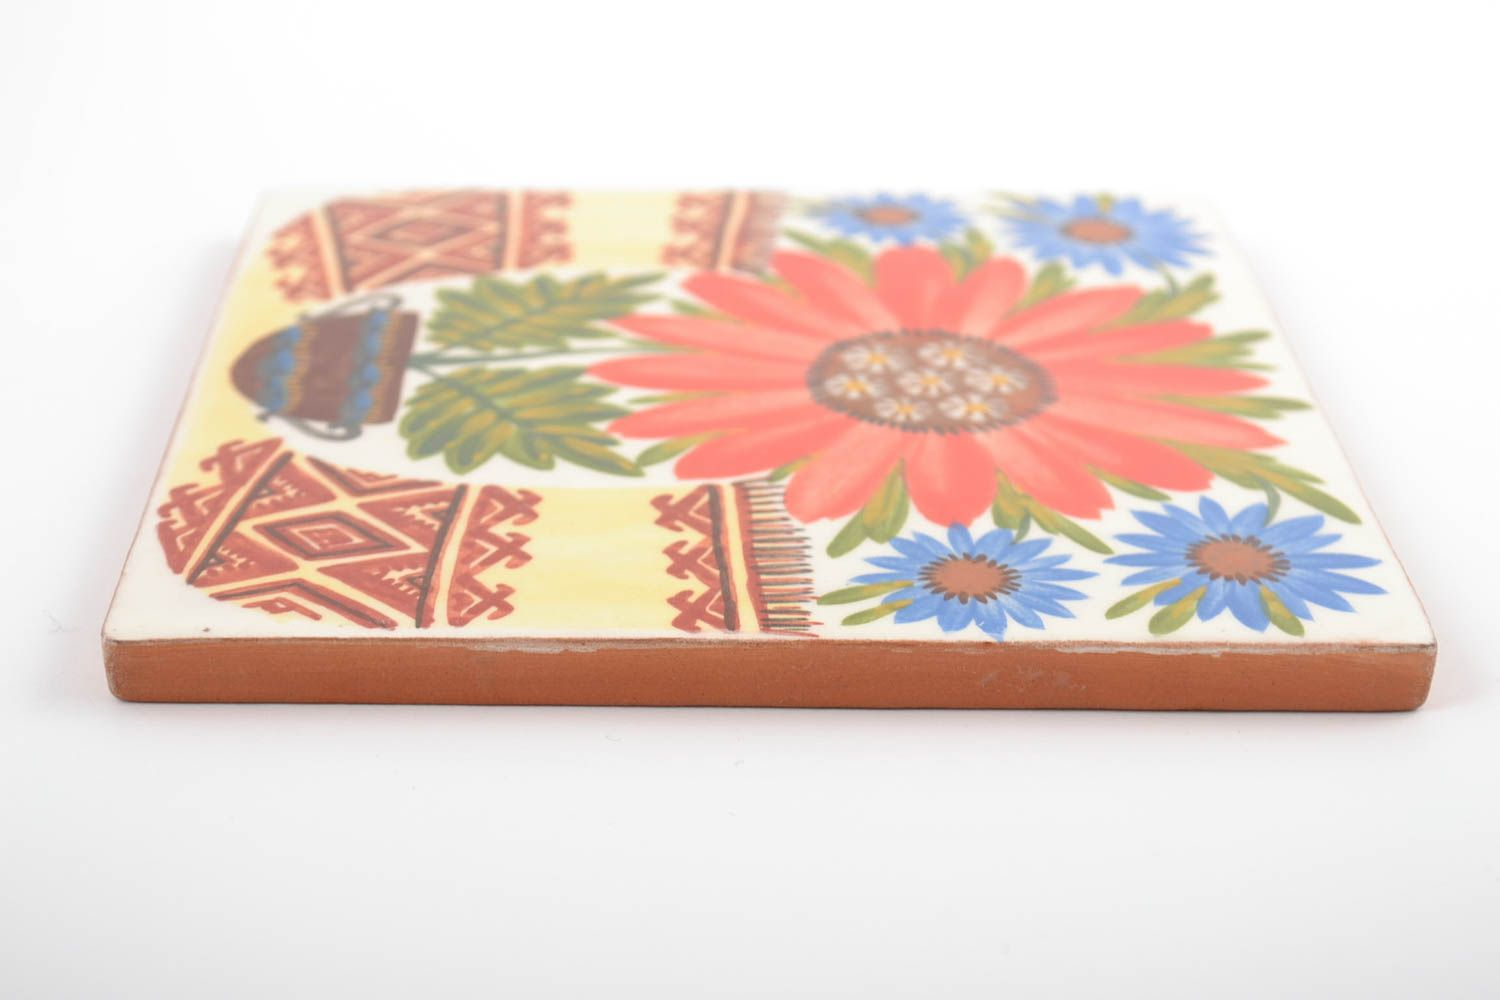 Square handmade wall tile with flowers made of clay colorful interior wall panel photo 4